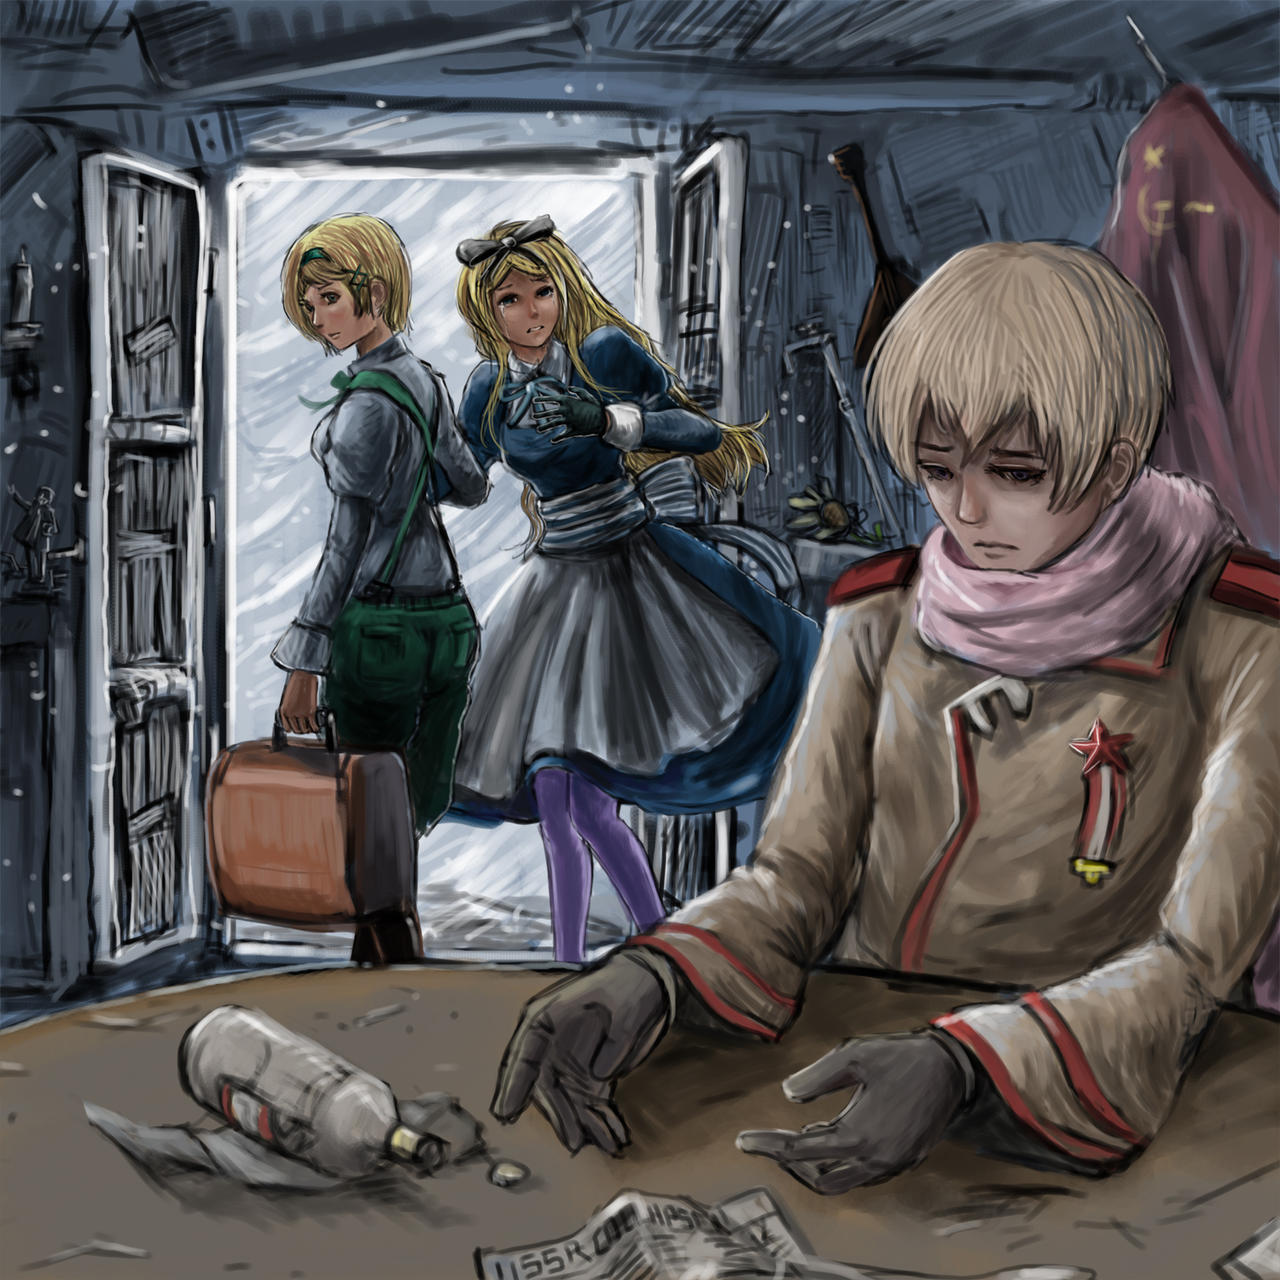 Hetalia ukraine x reader x belarus conditions